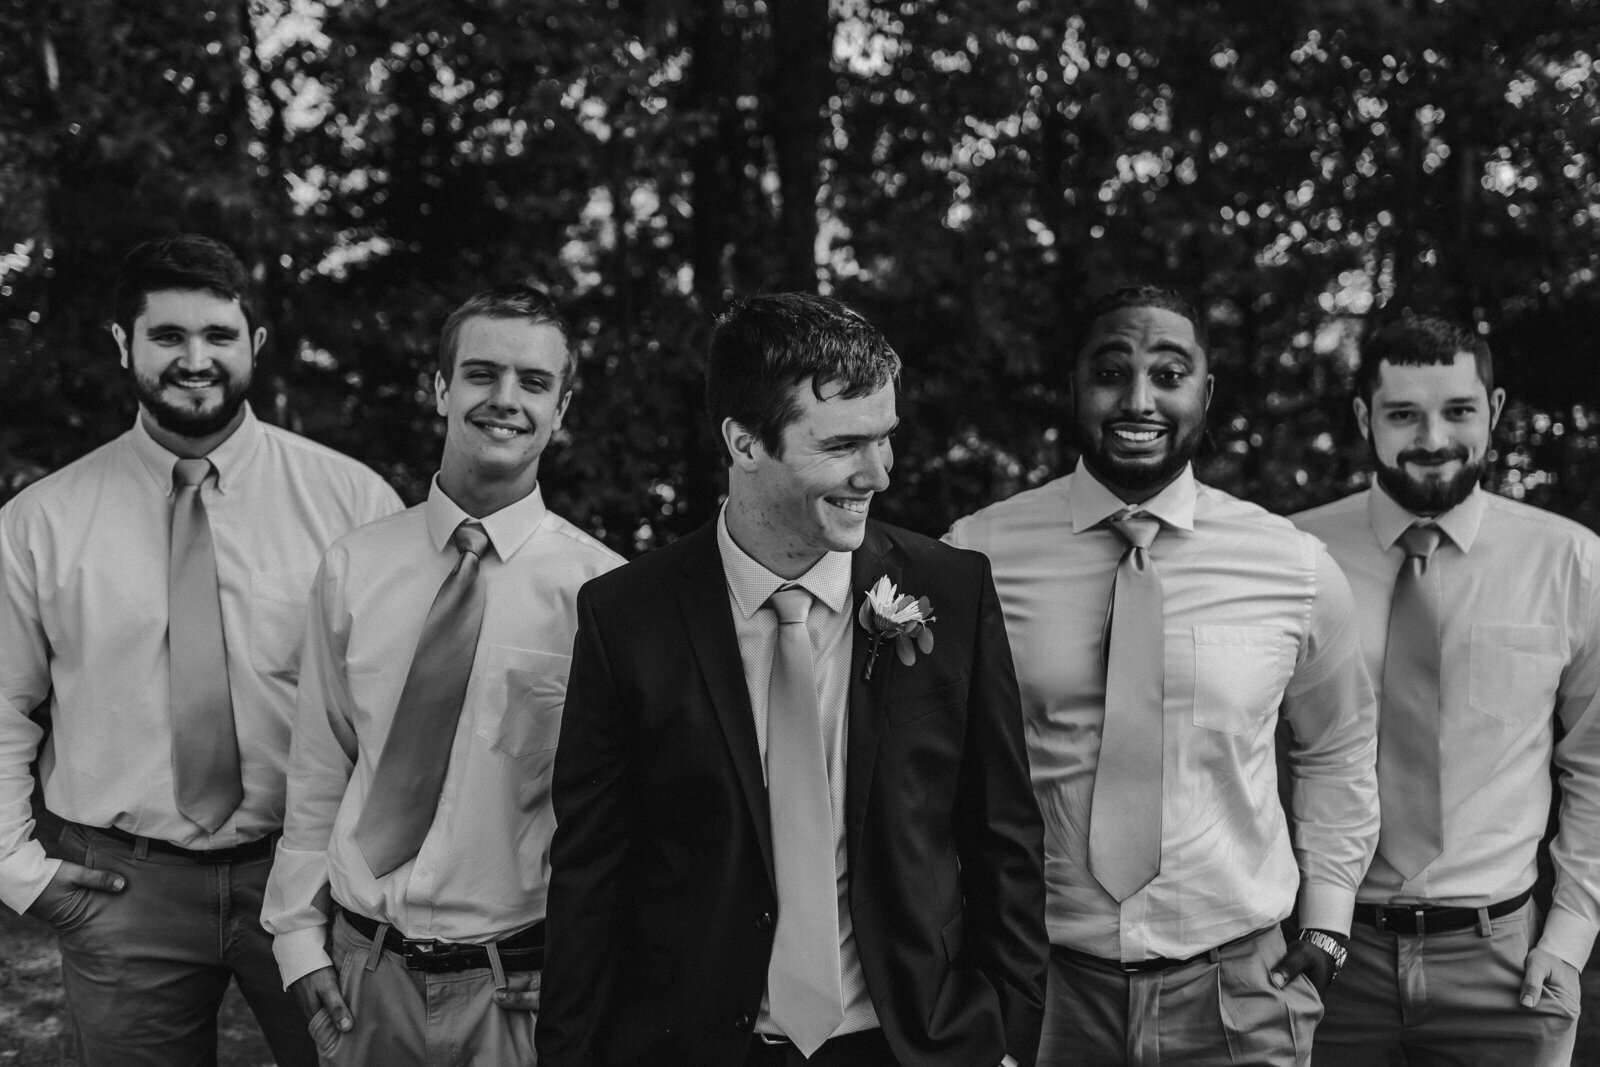 J.Michelle Photography photographs groom and best men laughing